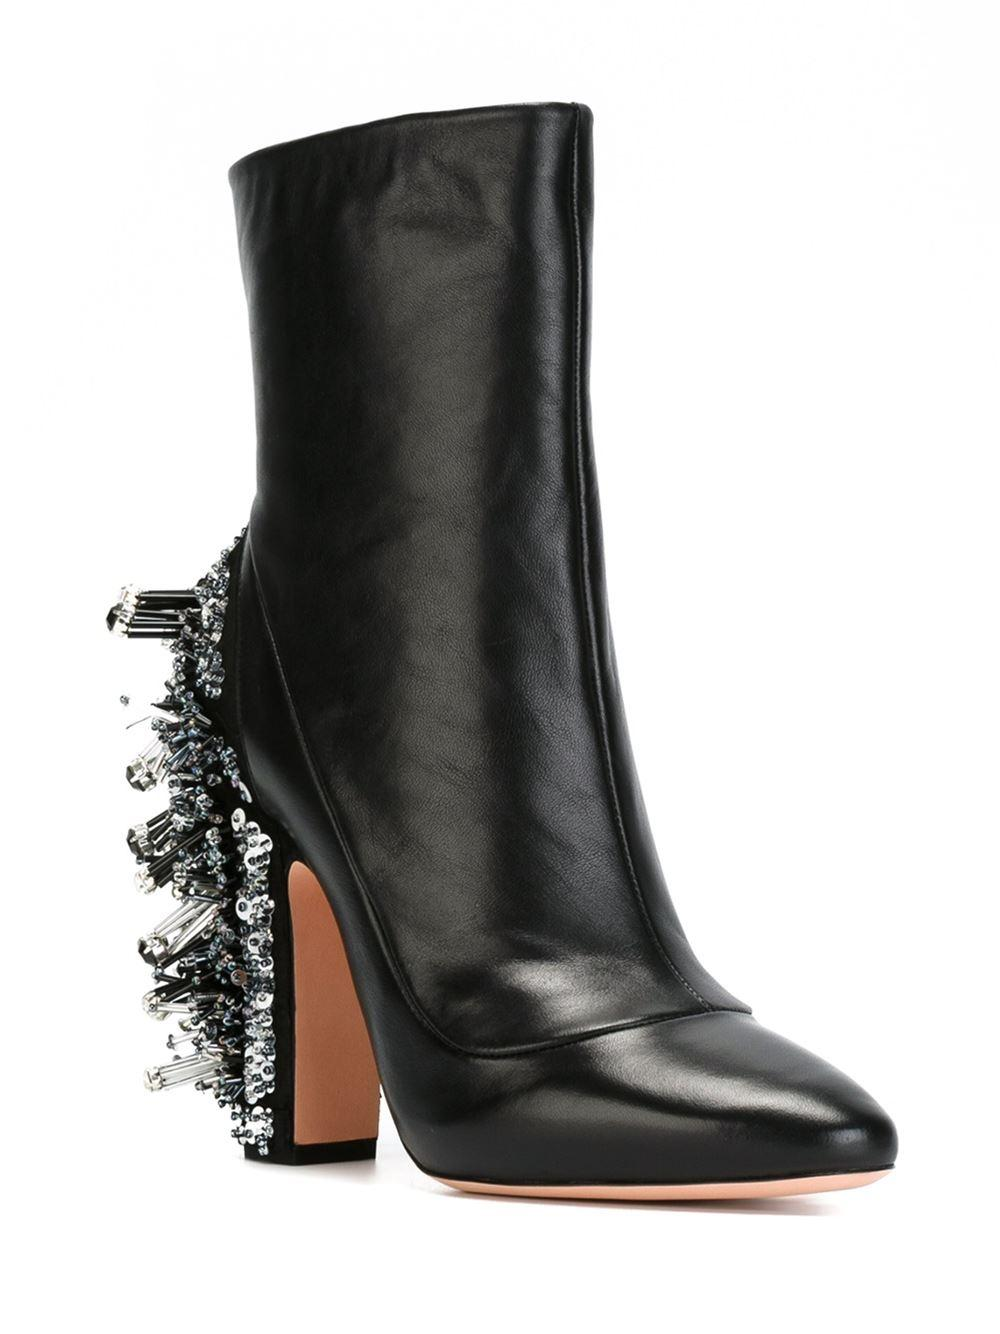 Rochas Leather Embellished Heel Boots in Black